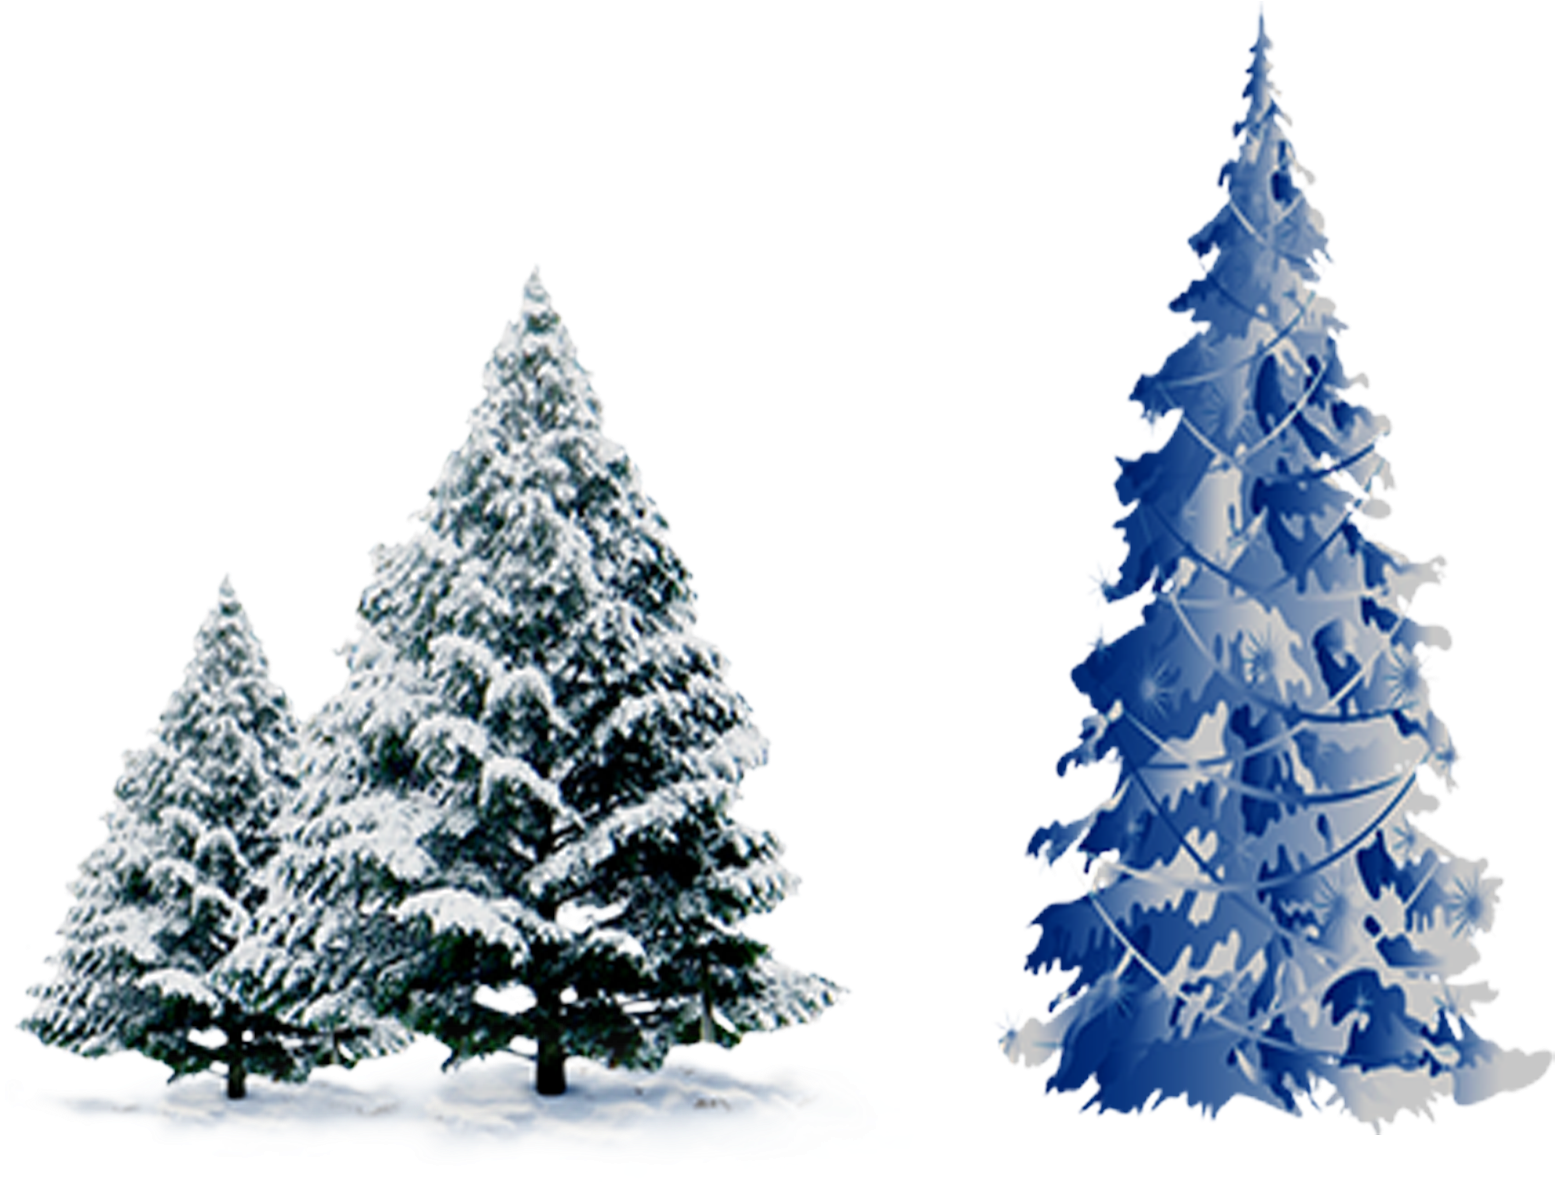 Transparent winter pine tree clipart - Snow Pine Png - Blue Christmas Tree Vector Png